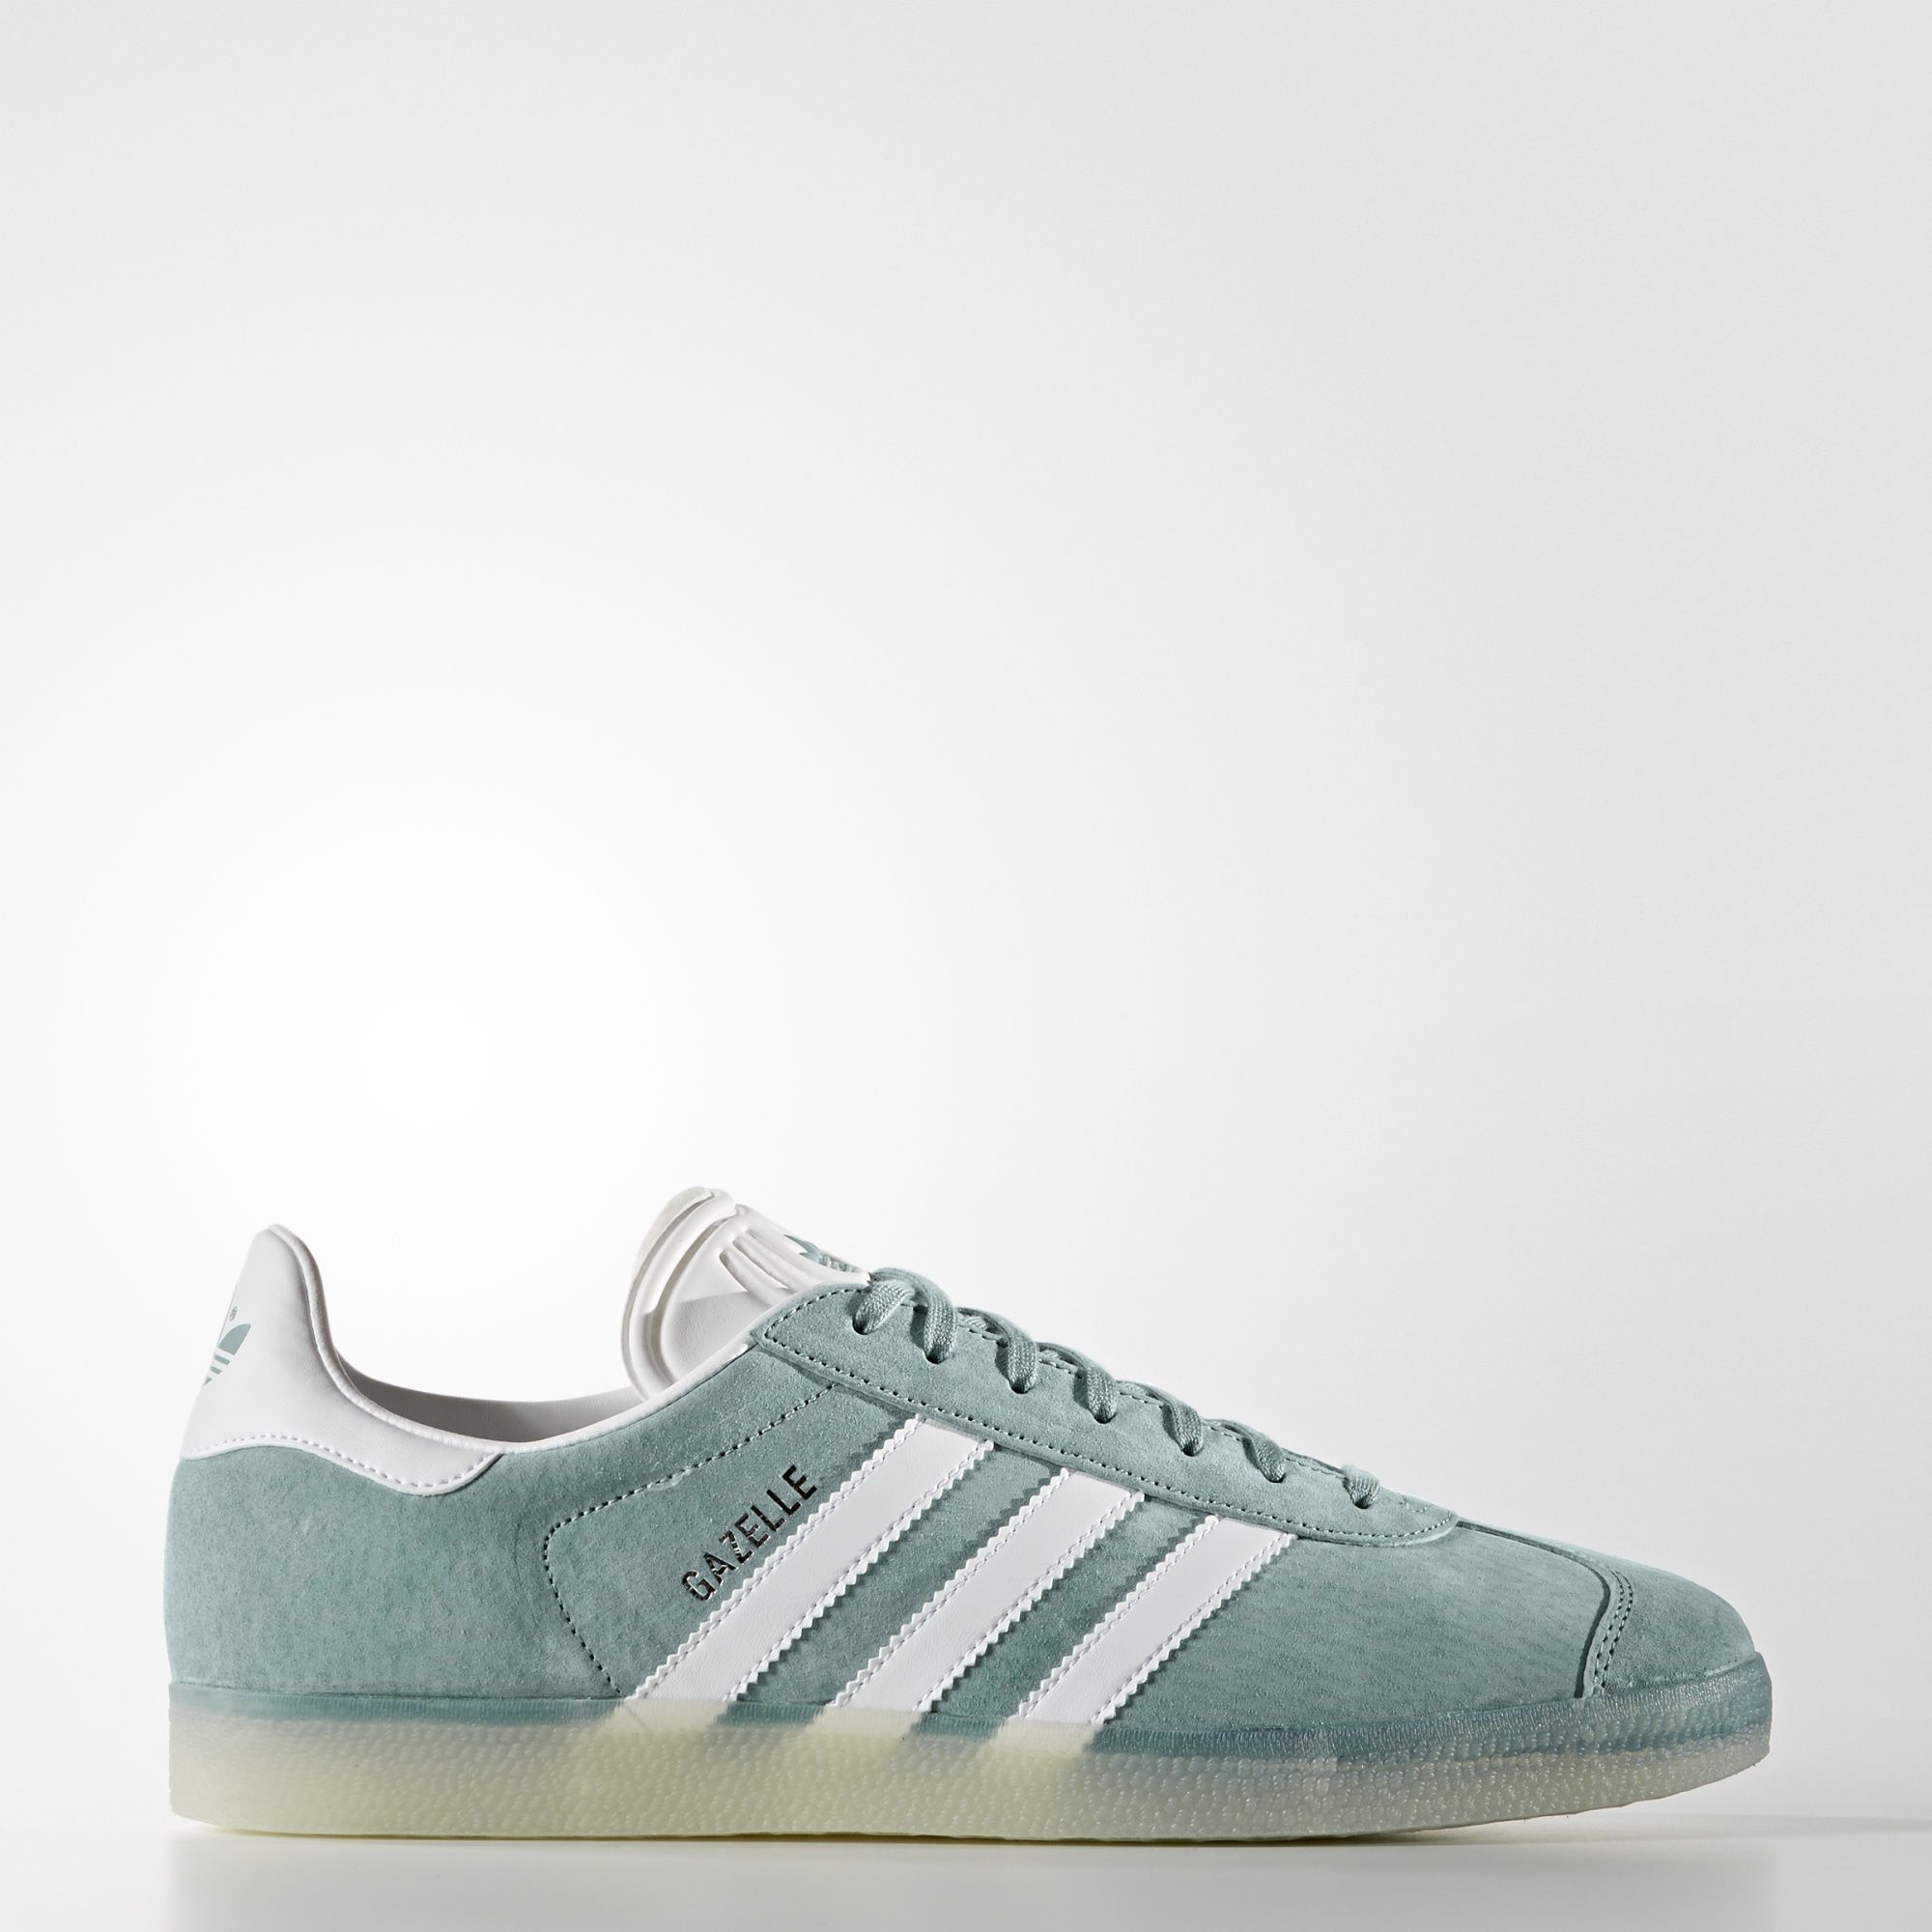 adidas Gazelle Shoes | Adidas shoes originals, Adidas gazelle